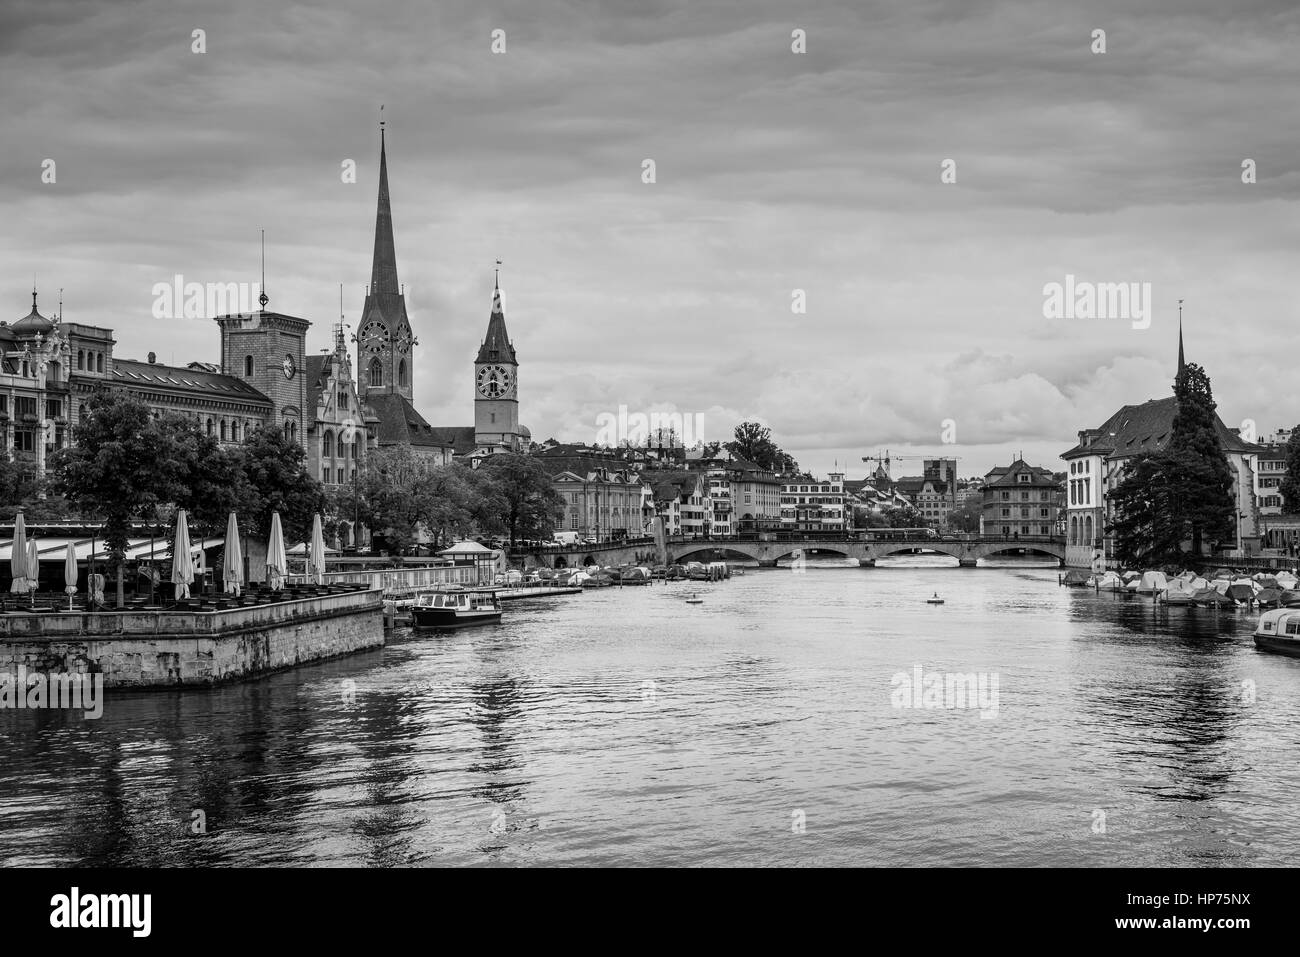 View of historic Zurich city center with Fraumunster Church, Munsterbrucke bridge and Limmat river on a cloudy rainy - Stock Image